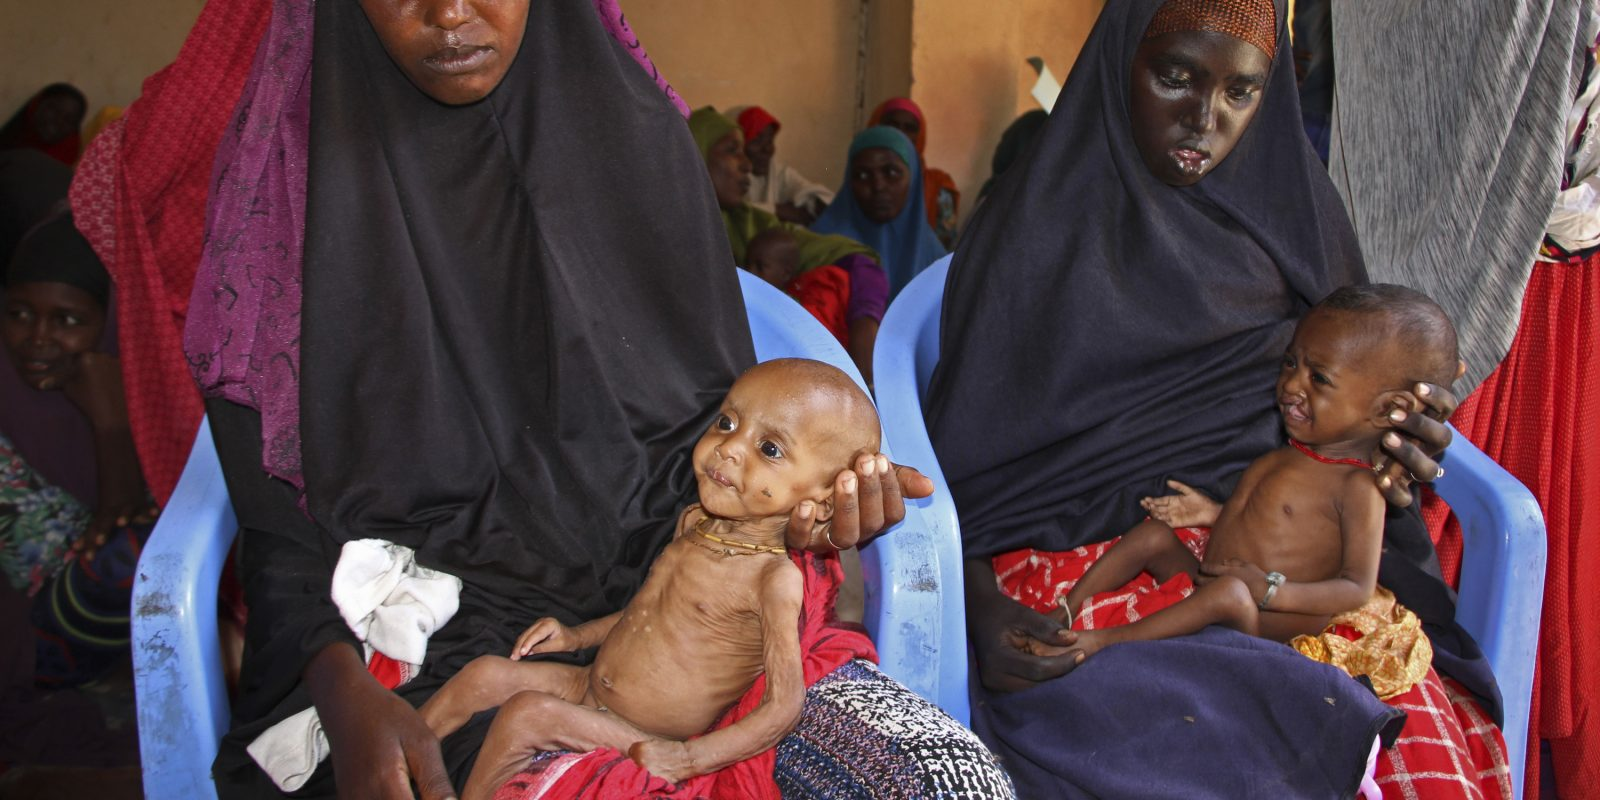 © Copyright 2017 The Associated Press. All rights reserved.. Imagen Por: En esta foto, Ali Hassan, un bebé desnutrido de 9 meses de edad (izquierda), es sostenido por su madre Fadumo Abdi Ibrahim. En la derecha, Habiba Mohamed Aden sostiene a su bebé Mohamud Ahmed, de 6 meses de edad, en un centro de alimentación en un campamento en Mogadishu, Somalia. (Foto de AP / Farah Abdi Warsameh)